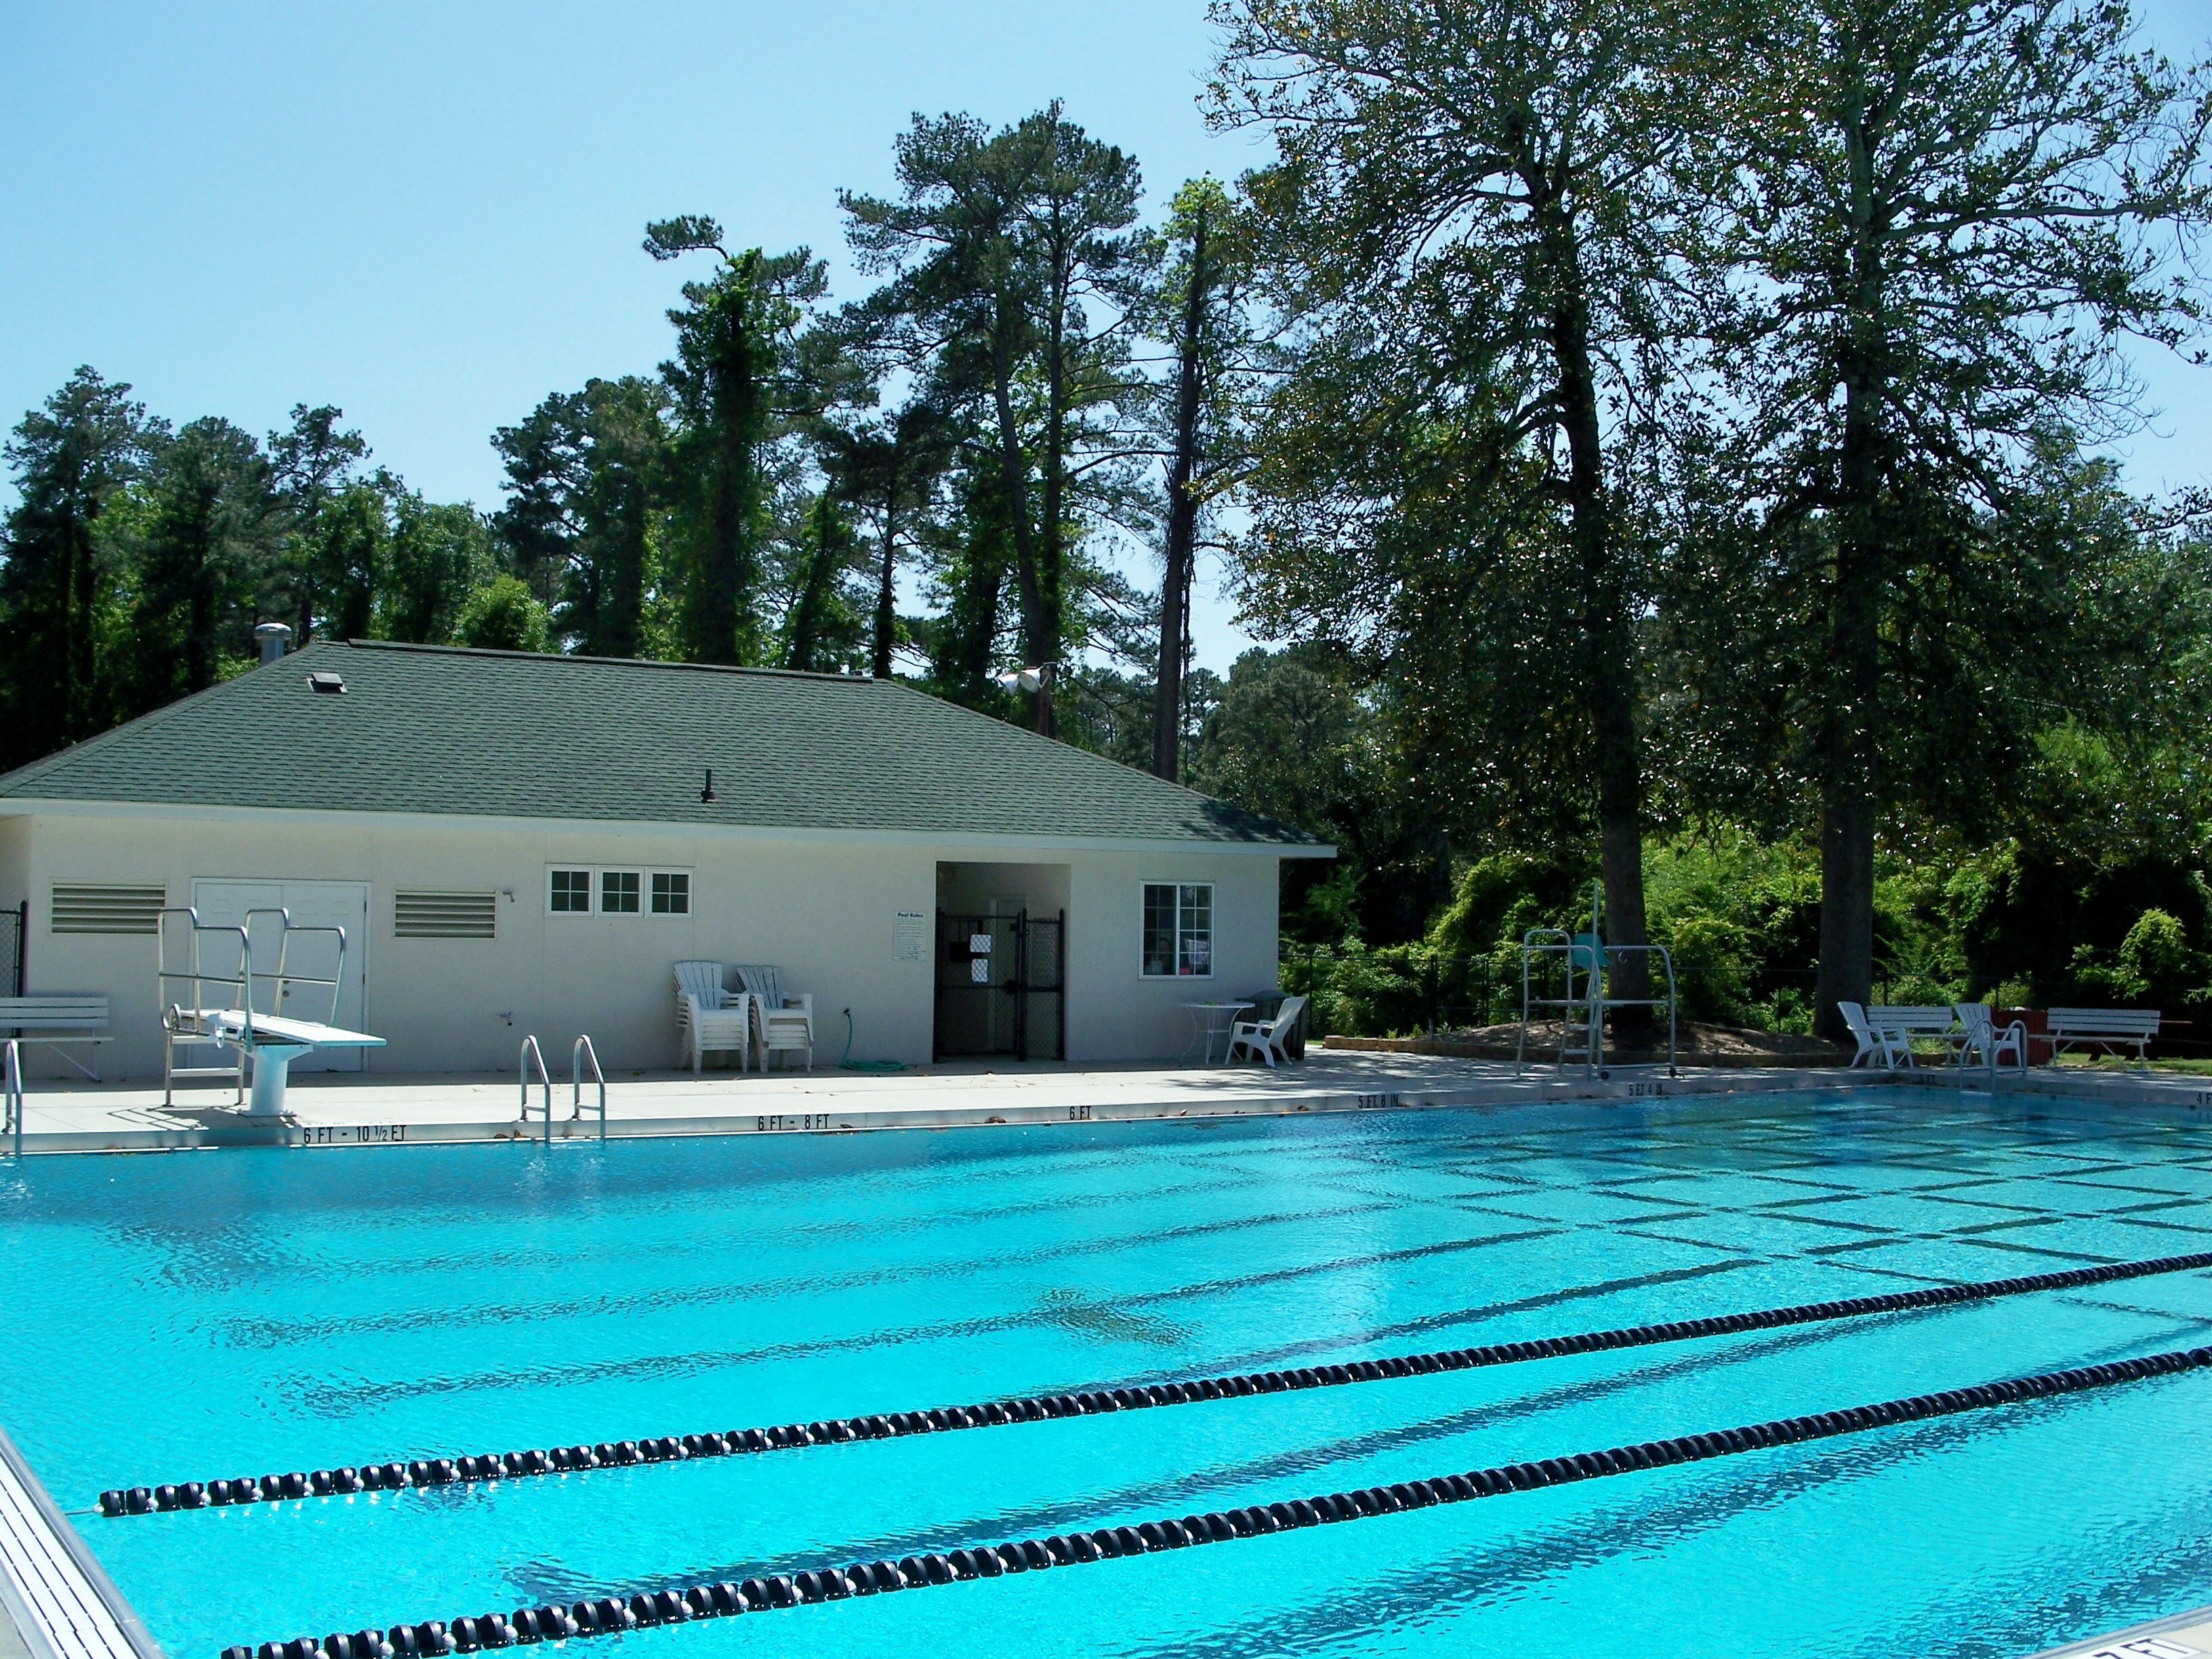 Fermata Pool and clubhouse.